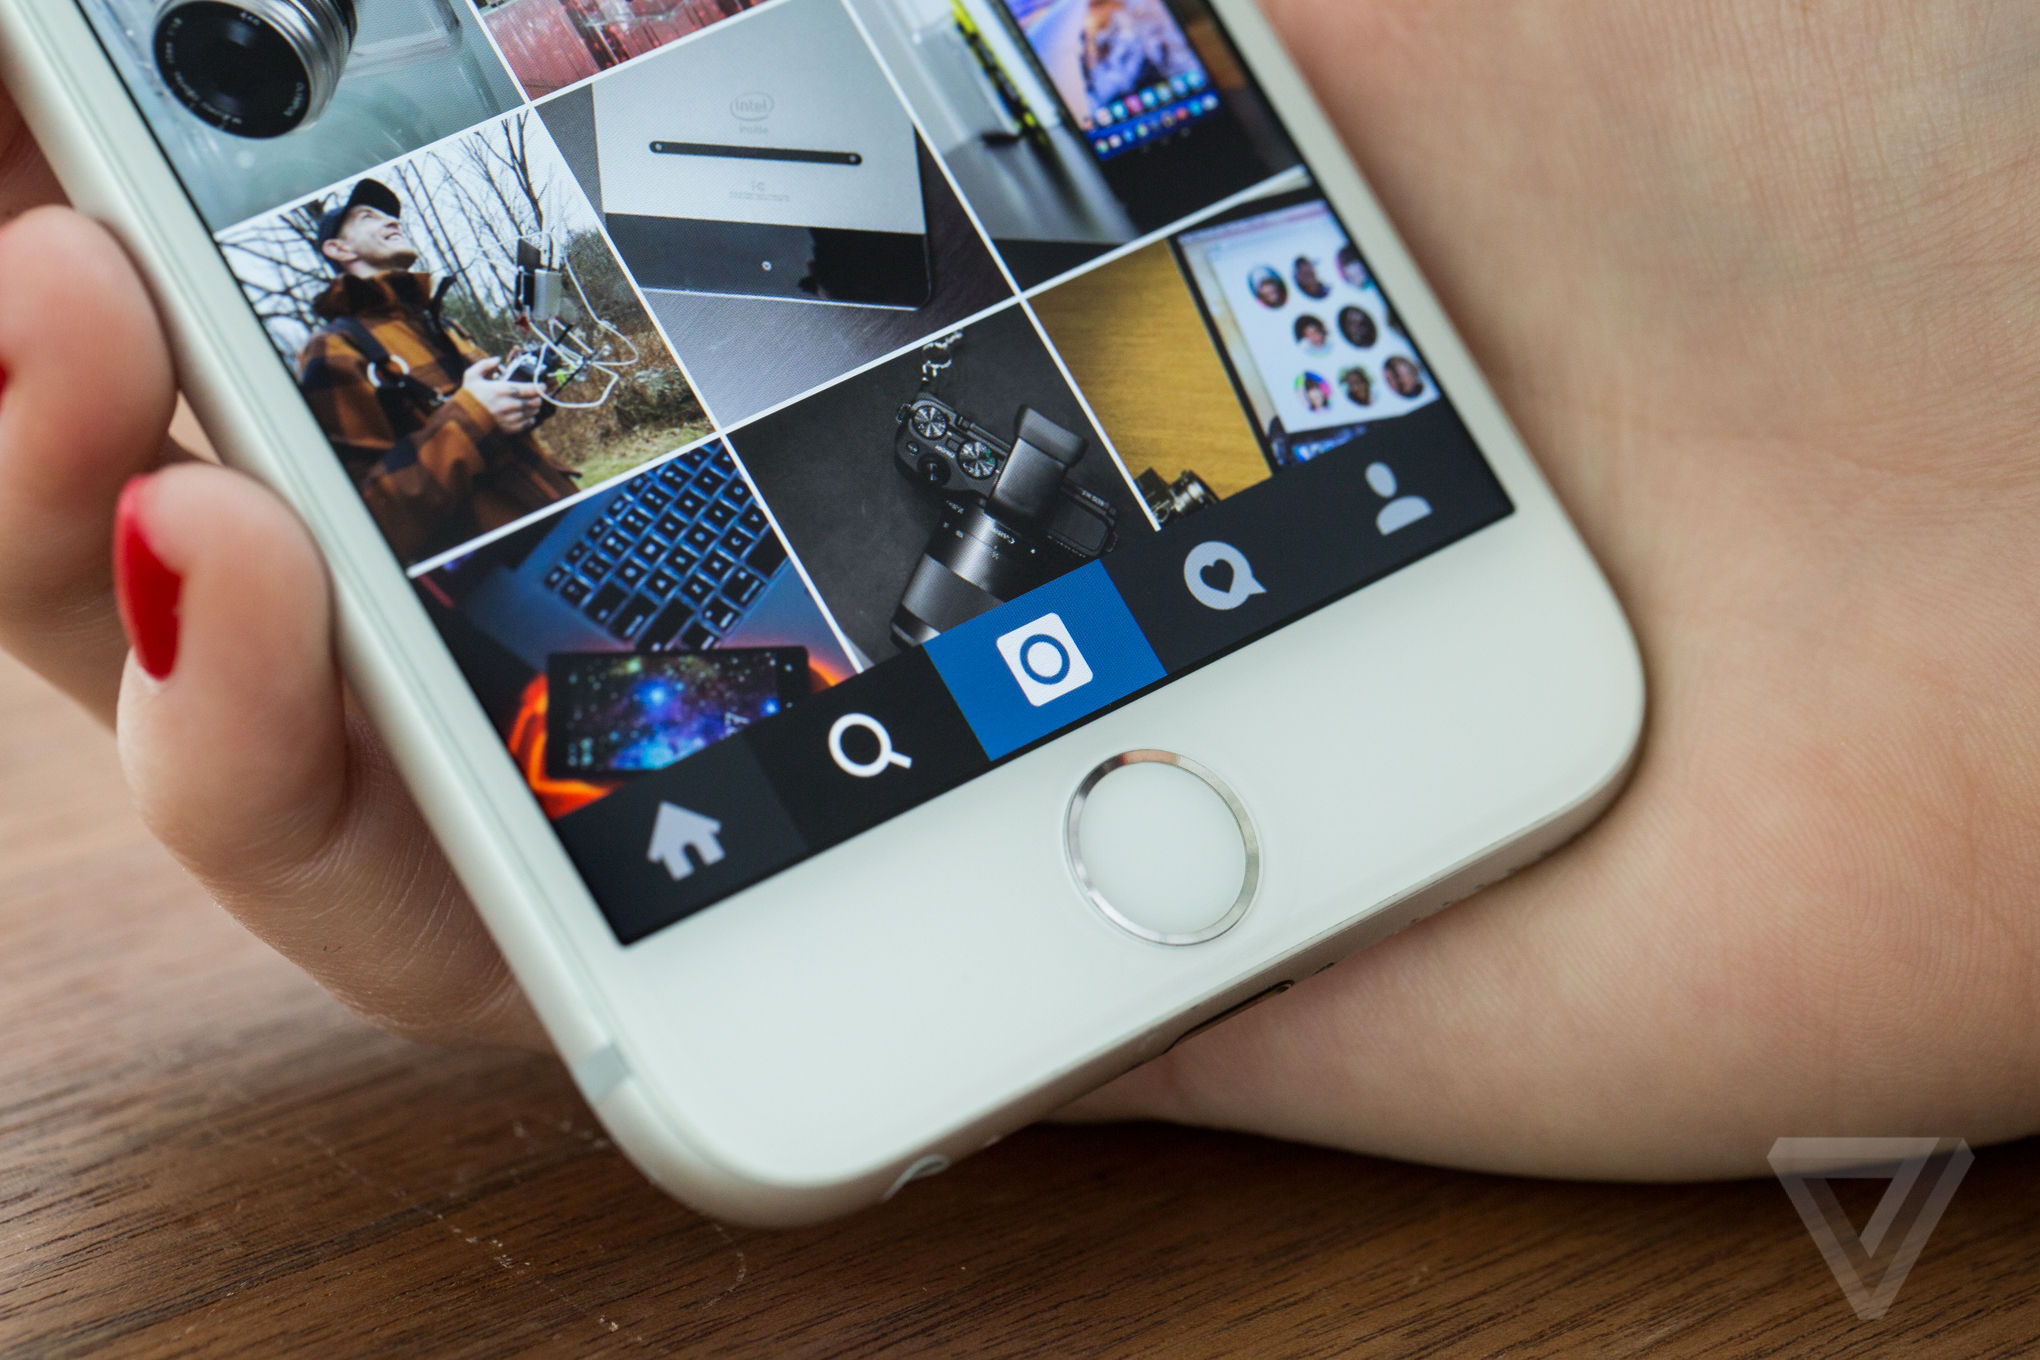 Instagram will now let you upload sets of up to 10 photos